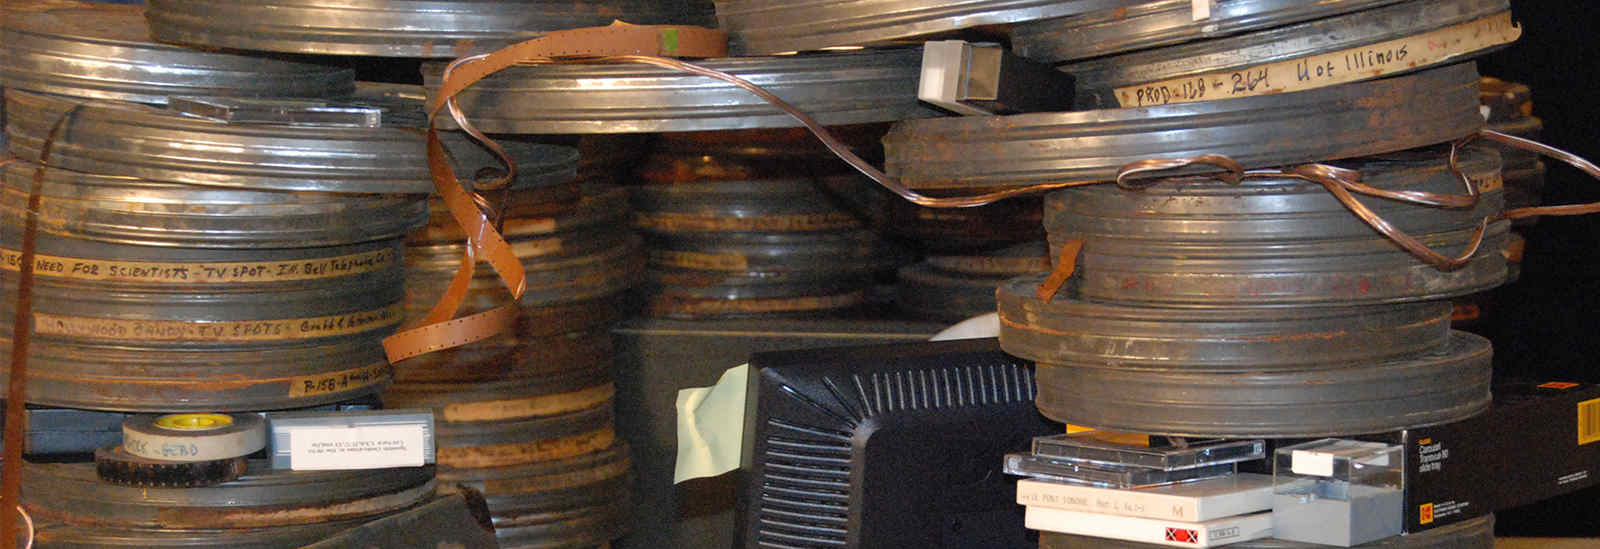 Photograph of old film canisters stacked on desk